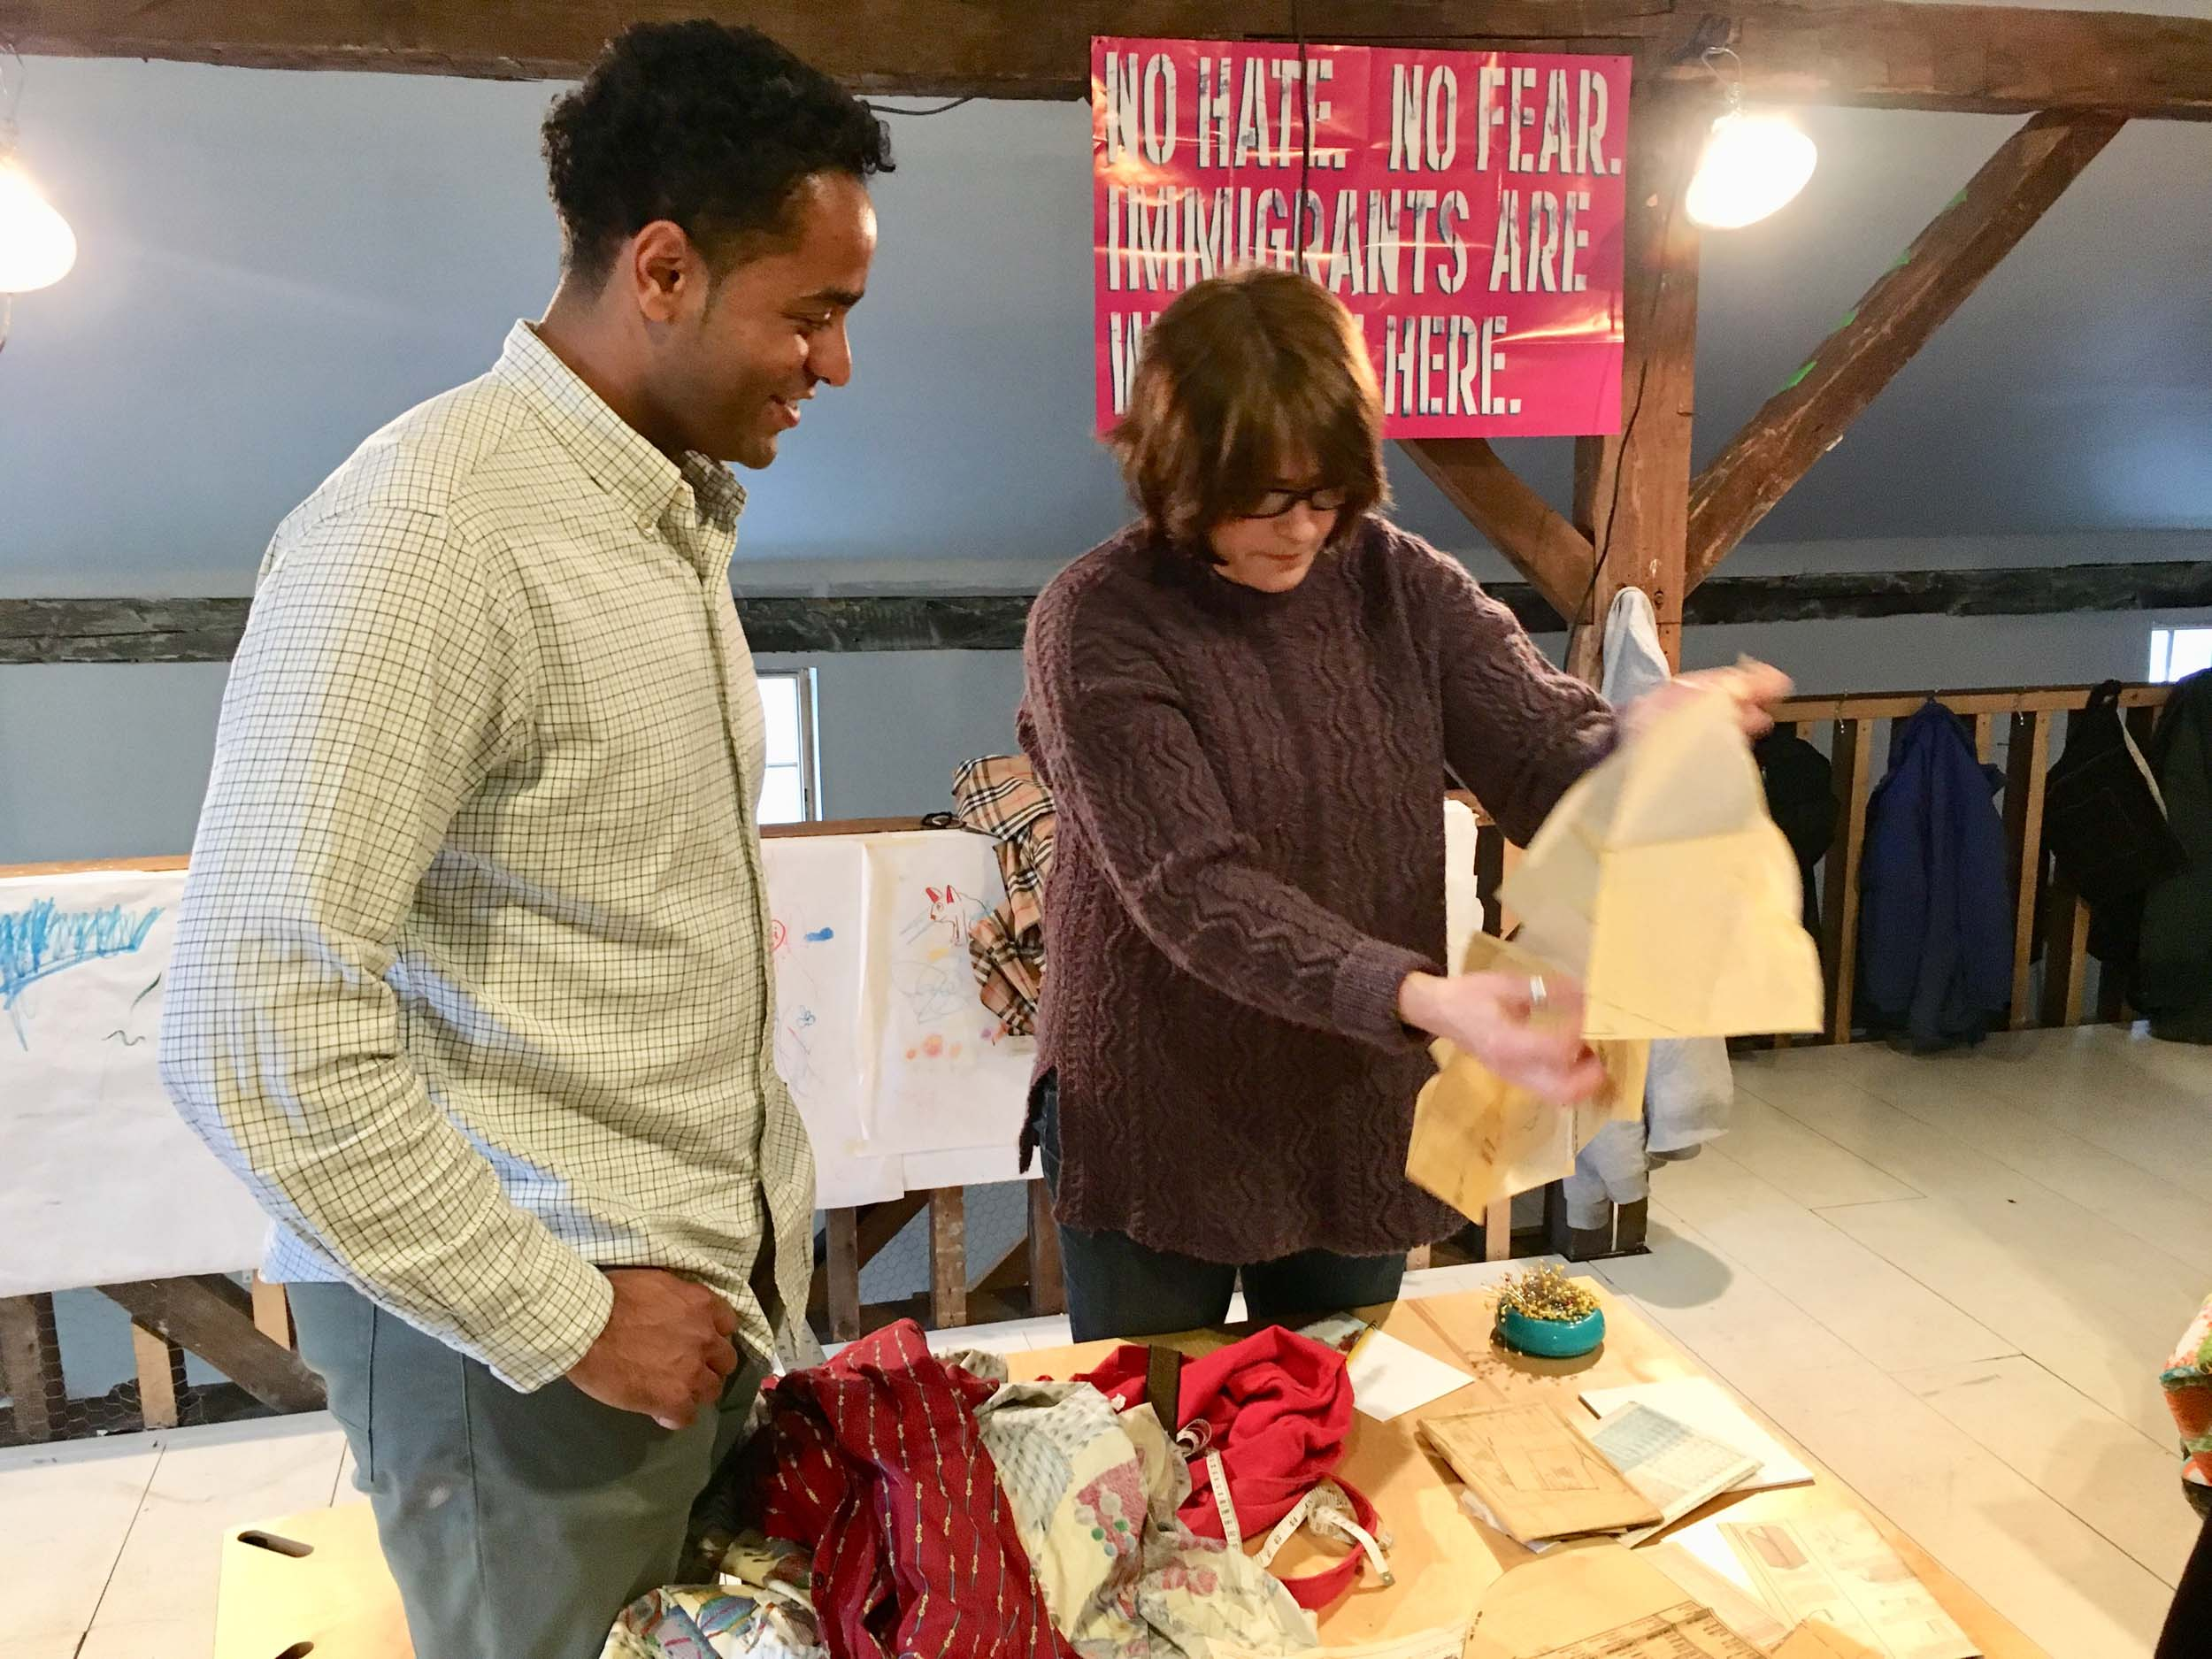 wassaic-project-education-fiber-arts-club-2018-04-17-18-25-34.jpg